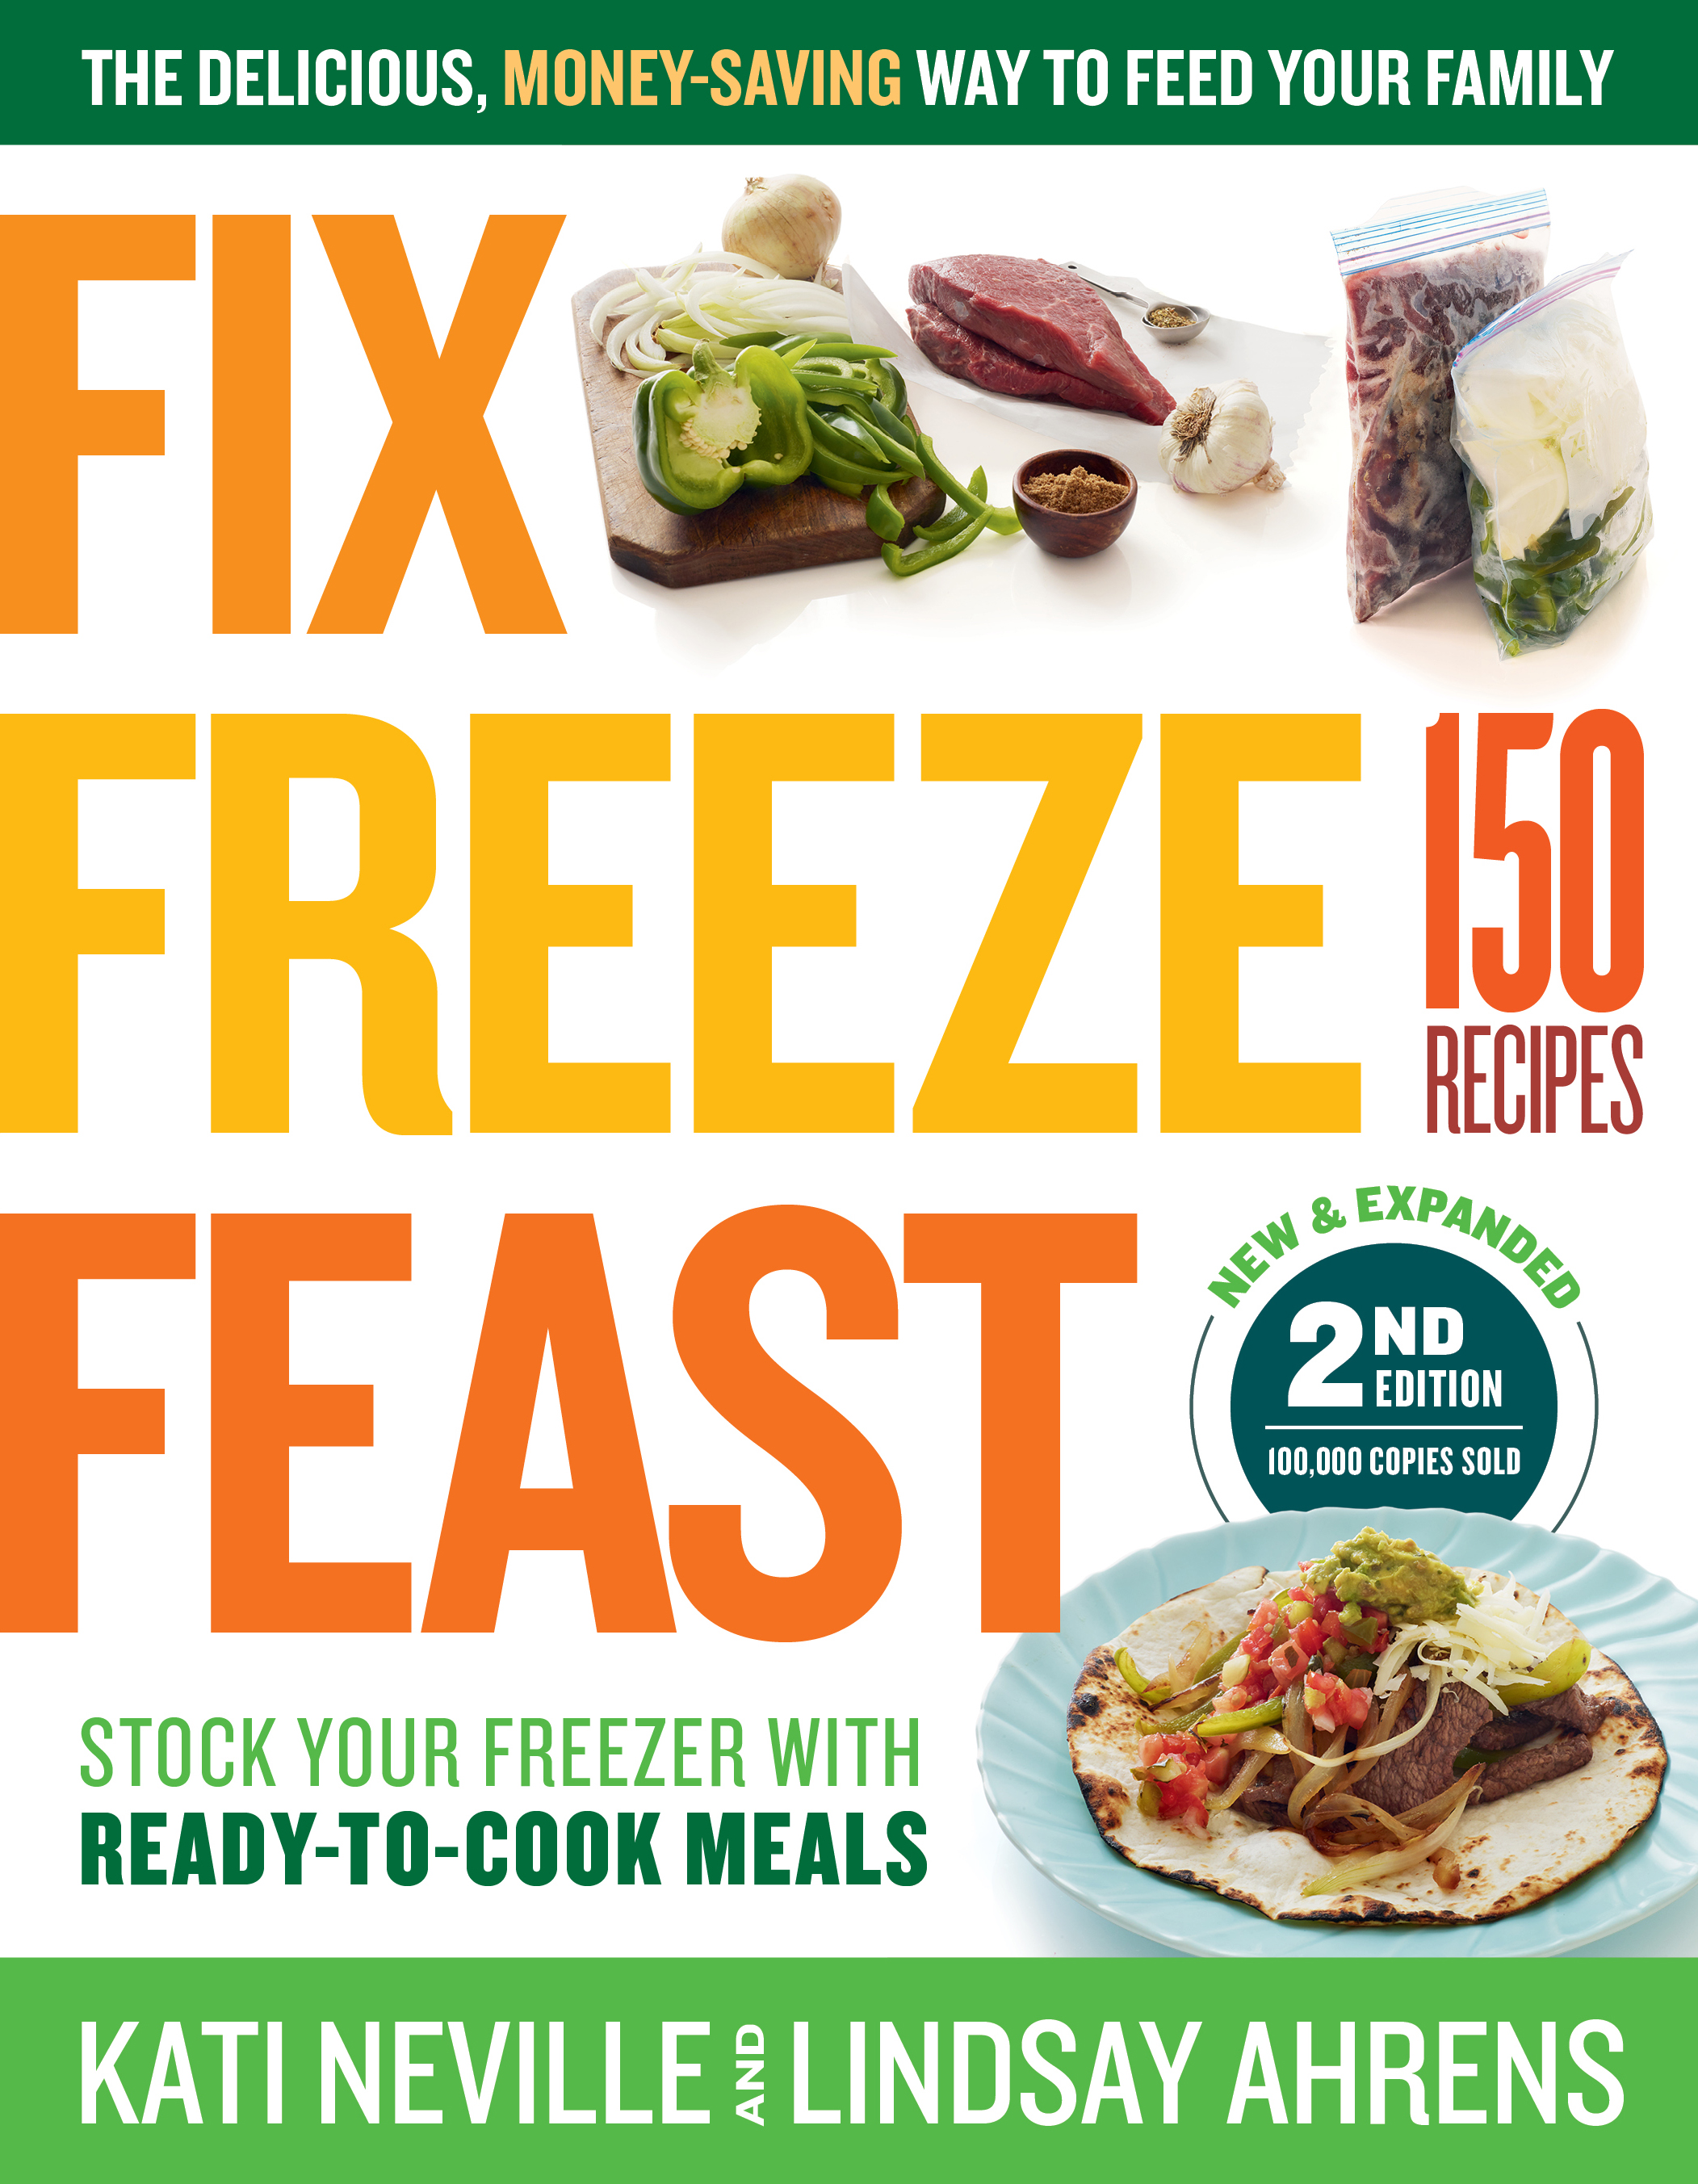 Fix, Freeze, Feast, 2nd Edition The Delicious, Money-Saving Way to Feed Your Family; Stock Your Freezer with Ready-to-Cook Meals; 150 Recipes - Kati Neville